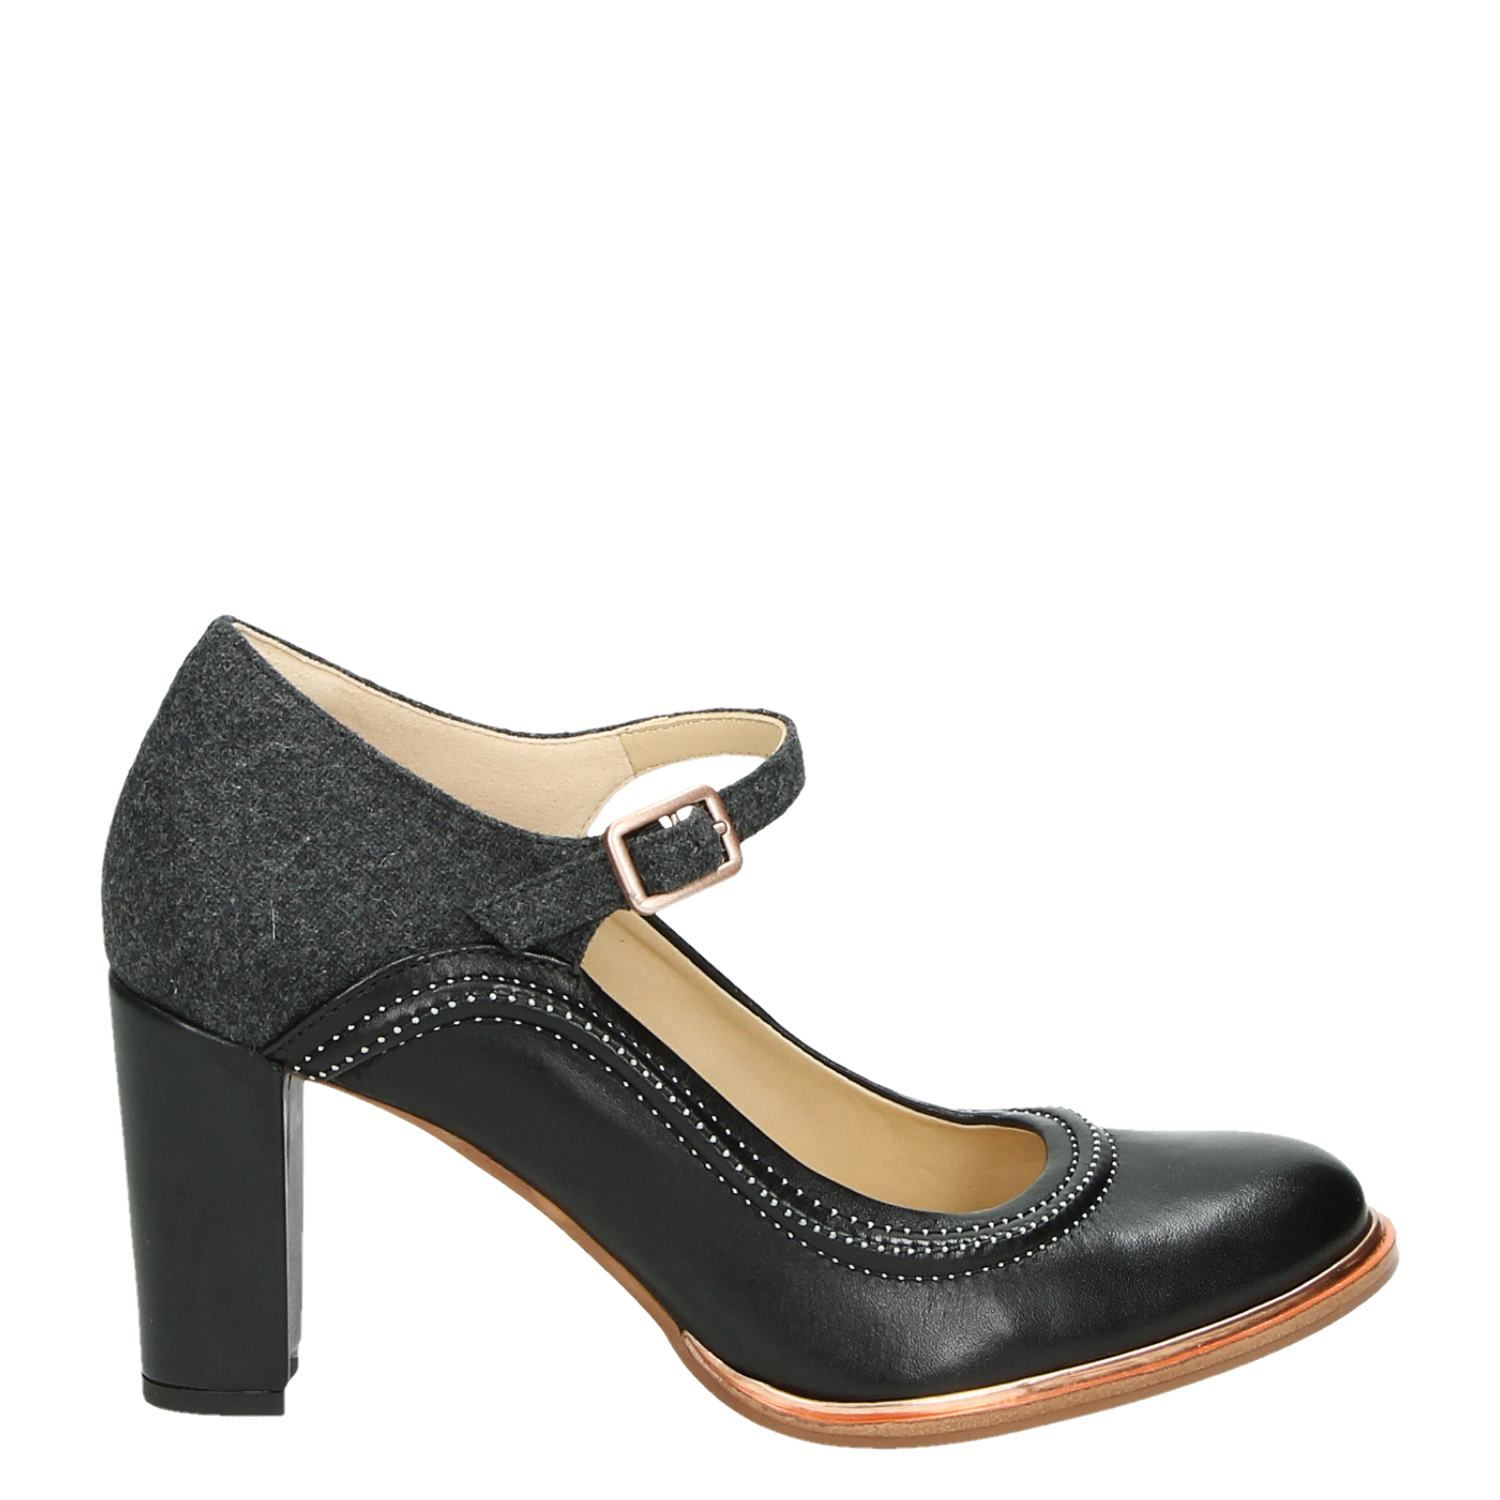 Shop our range of Pumps For women. Shop from our fantastic shoe collection from premium brands online at David Jones. Free & fast delivery available.